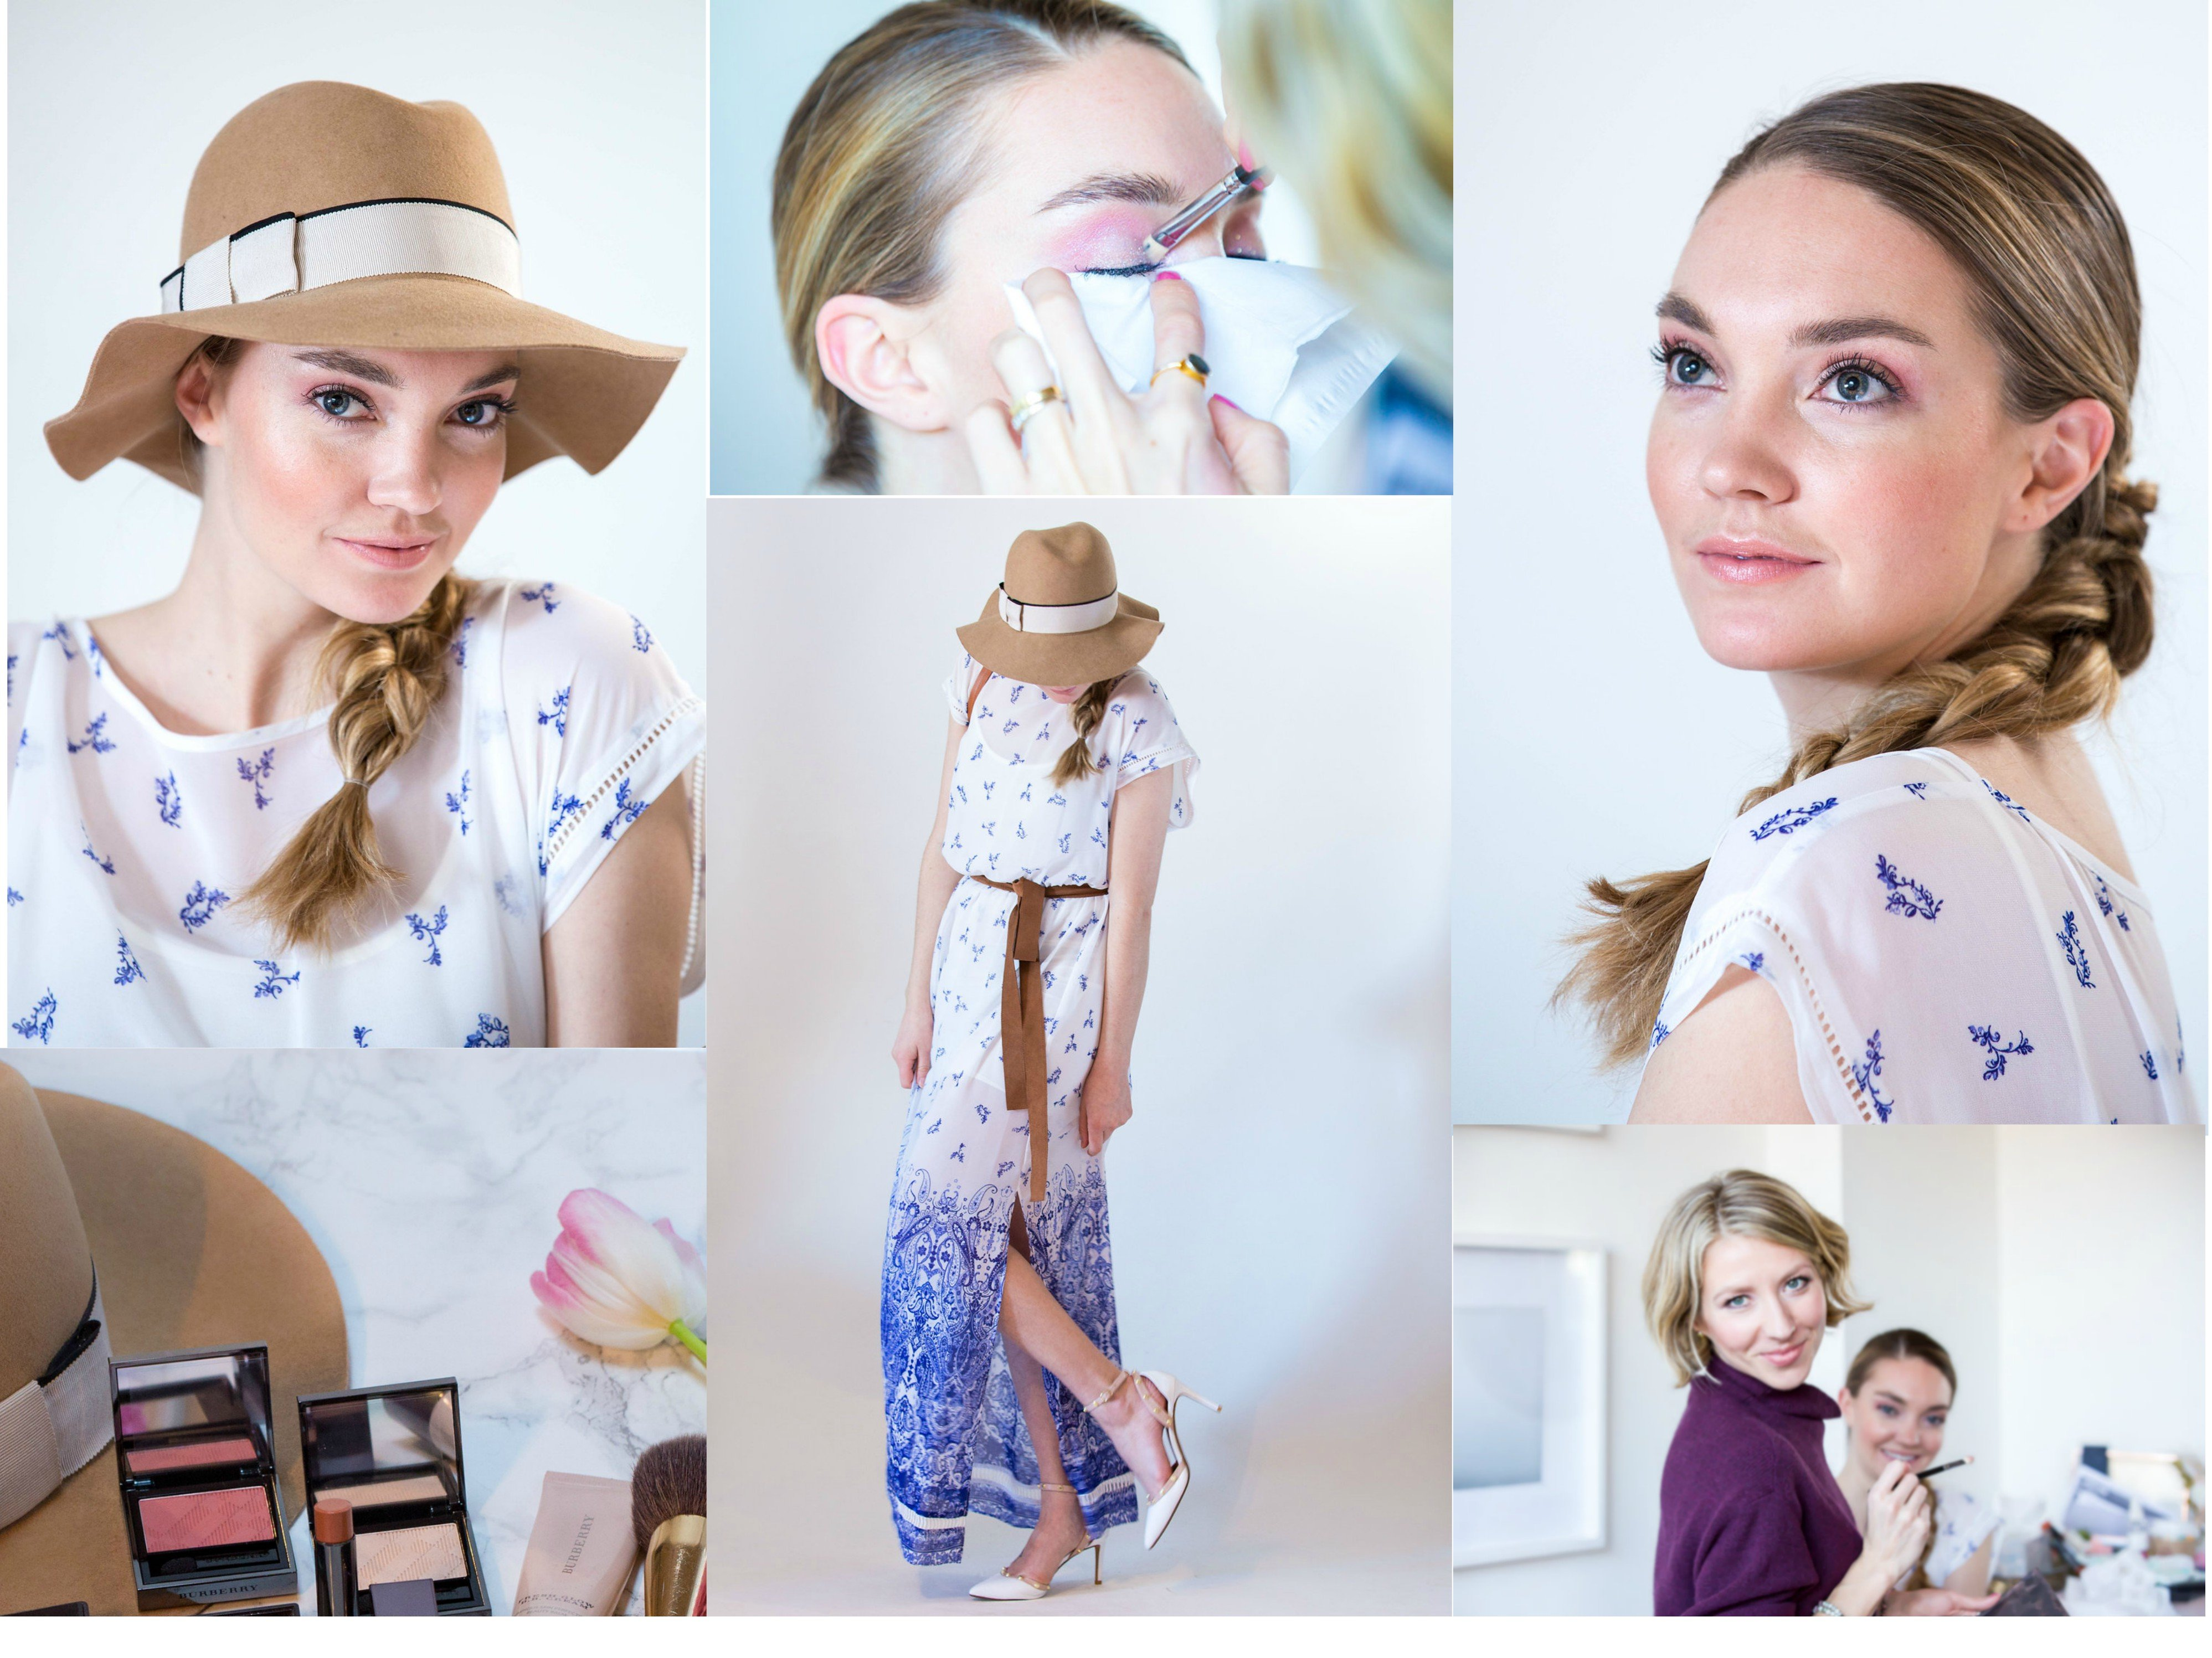 Effortless Bronzed makeup look for a casual weekend brunch with girlfriends created by Klava Z Ottawa makeup artist focused on bronzed glow, soft pink eyeshadows and nude lips.